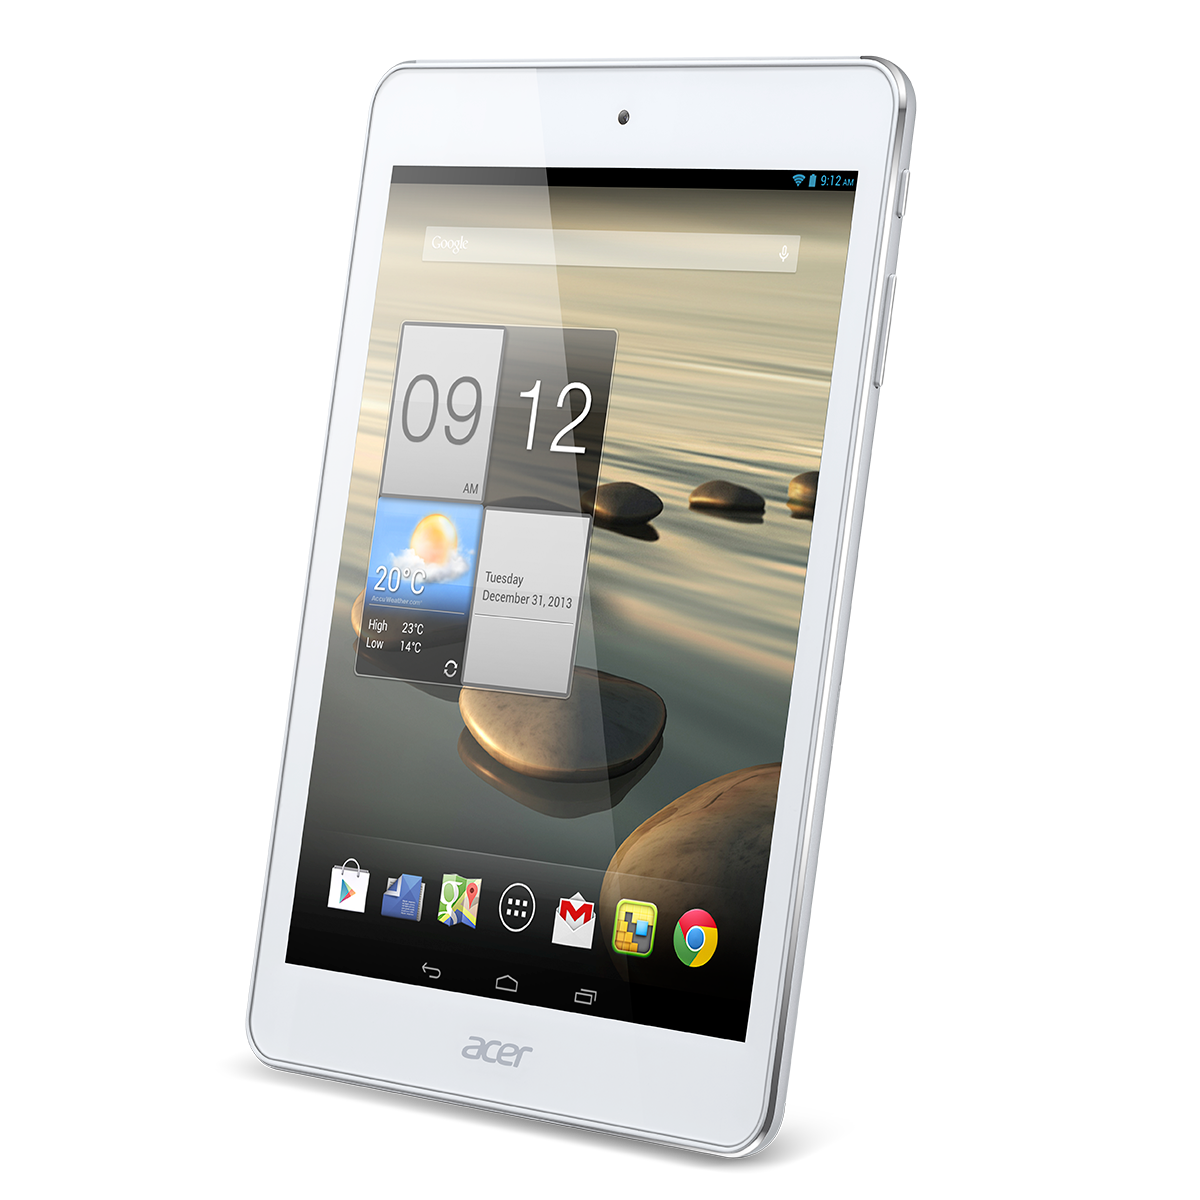 Acer Iconia A1-830 Image